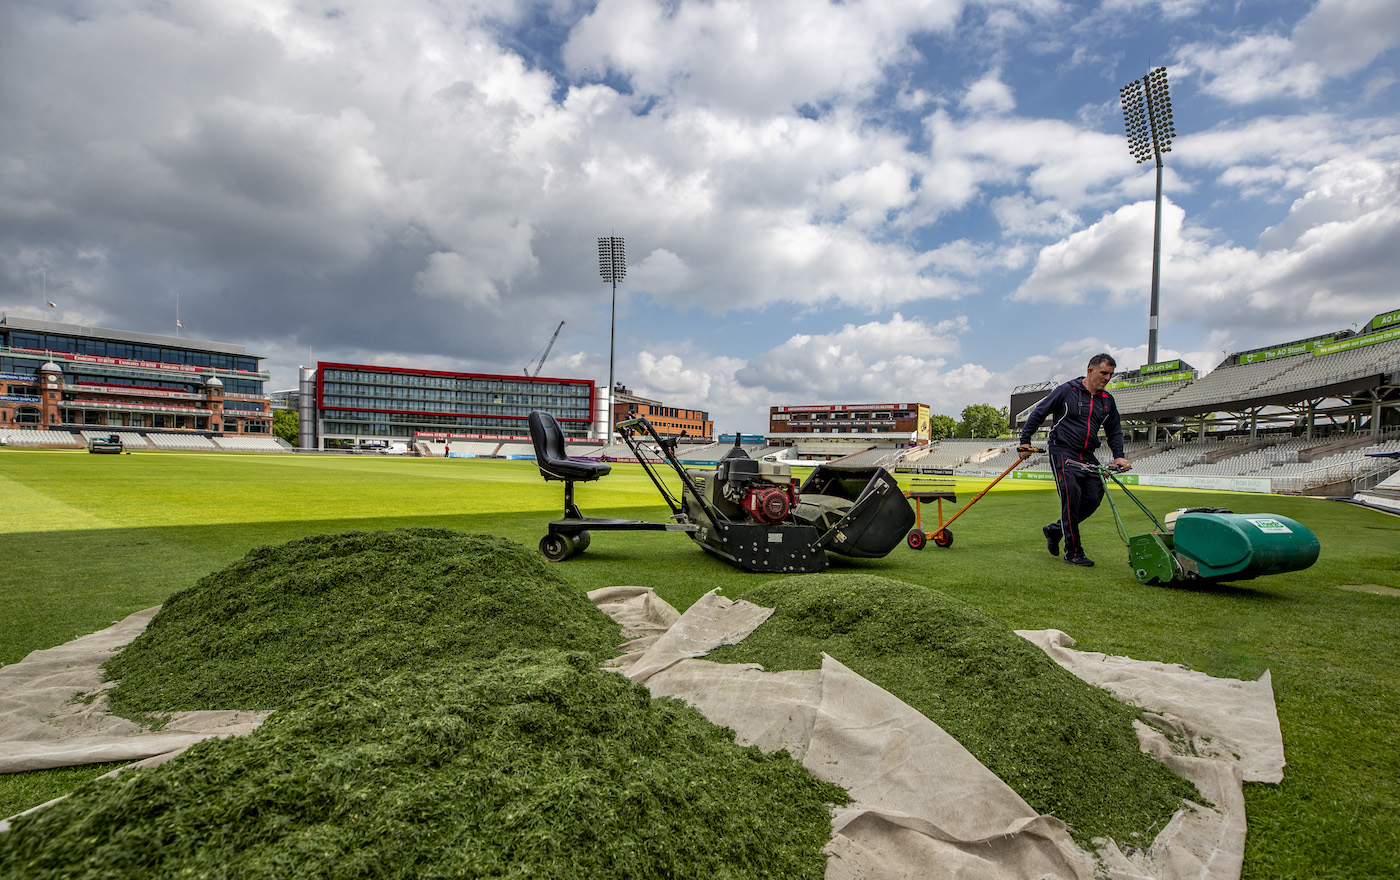 The head groundsman at Old Trafford mows the outfield in preparation for the West Indies Test series